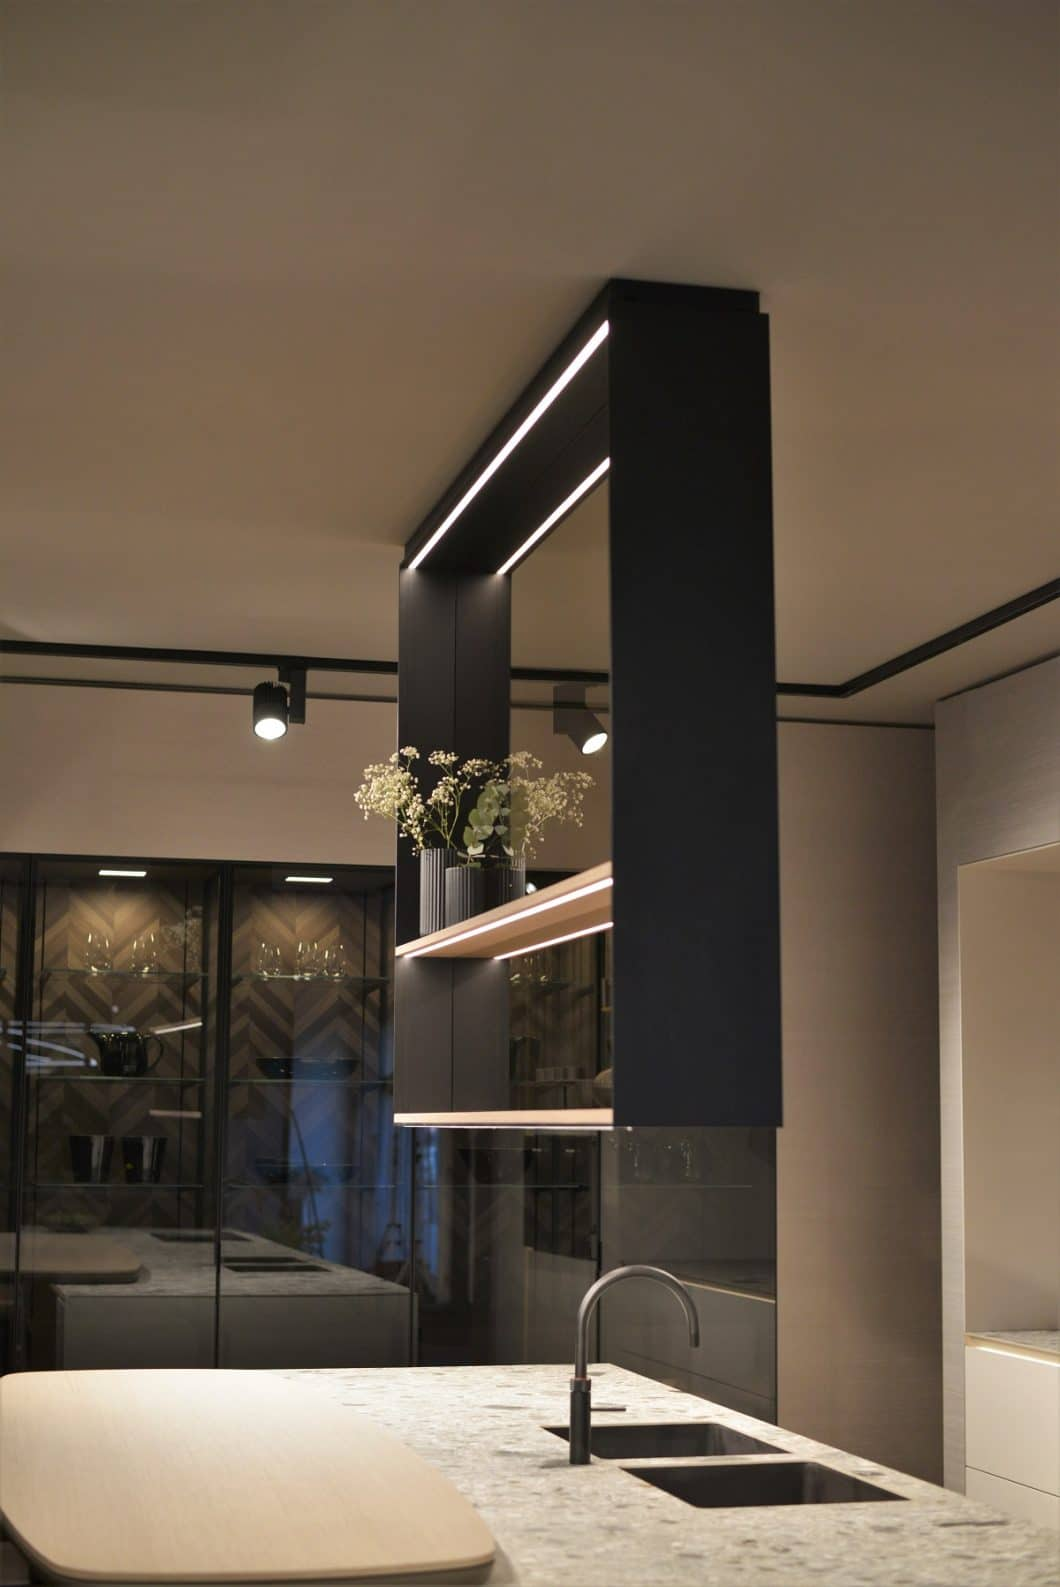 siematic die perfektion der reduktion liegt im detail. Black Bedroom Furniture Sets. Home Design Ideas